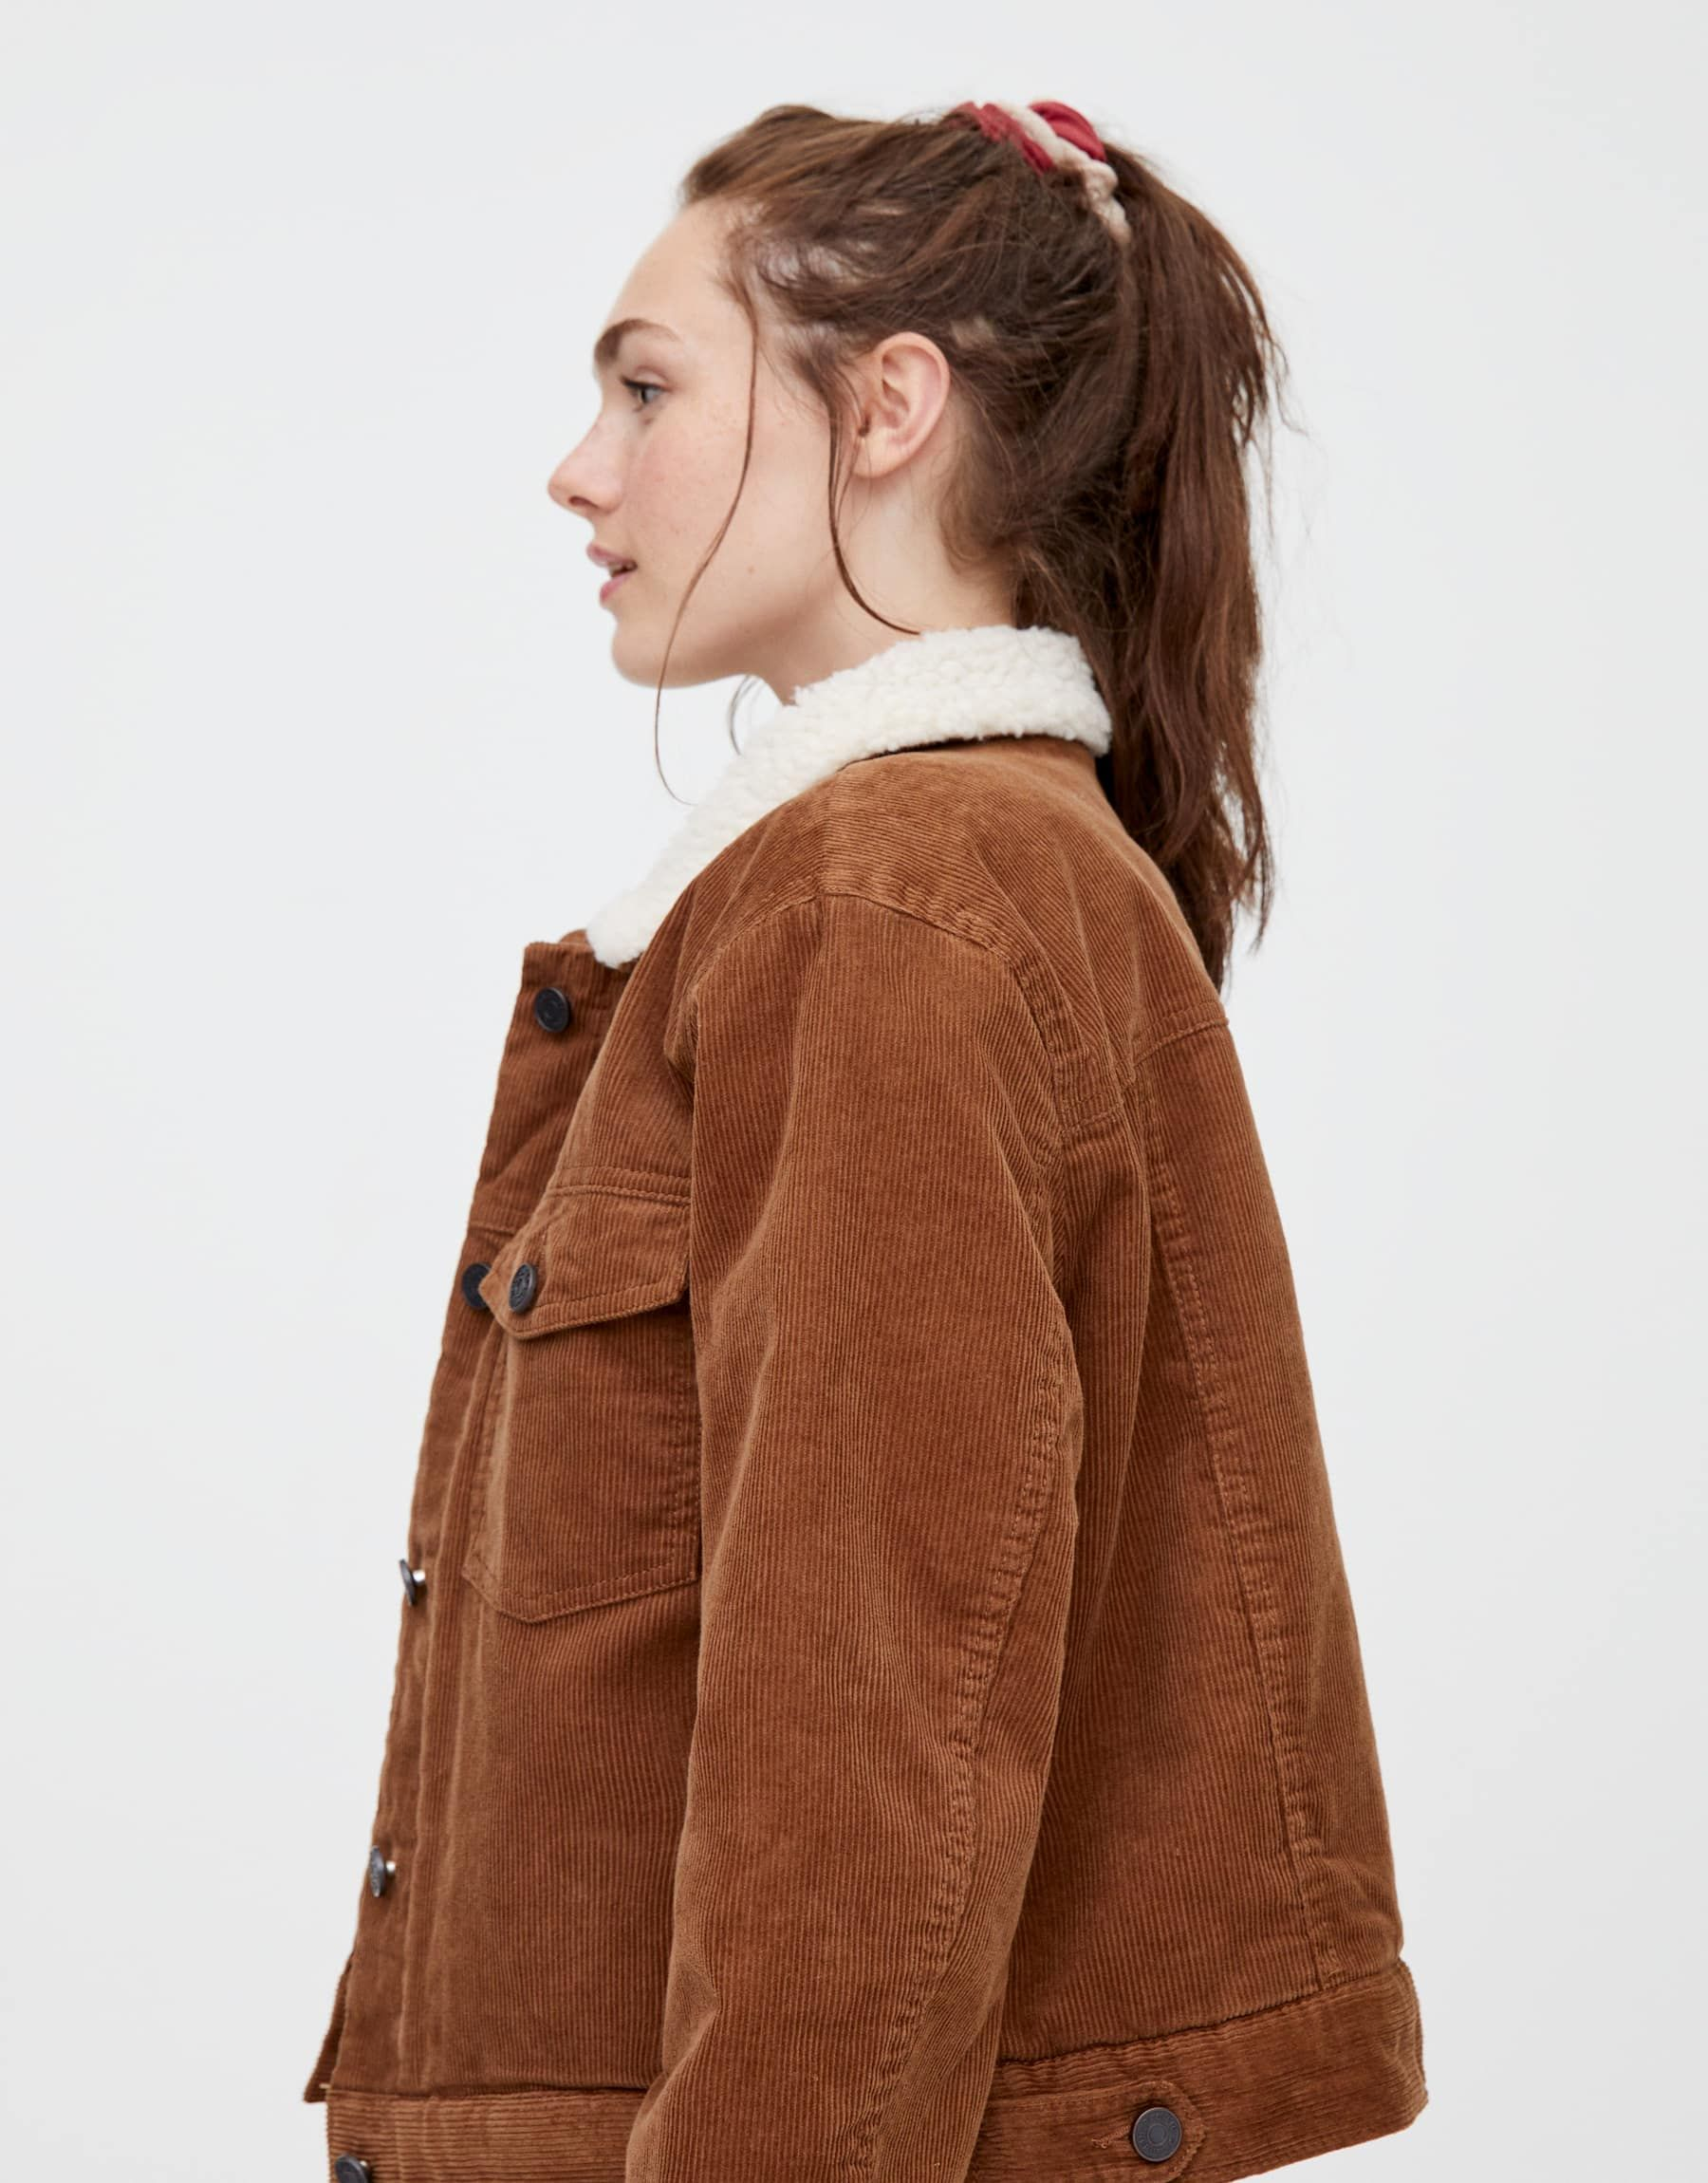 Short Corduroy Jacket With Faux Sheep Wool Pull Bear Wool Jacket Outfit Shearling Jacket Outfit Corduroy Jacket Womens